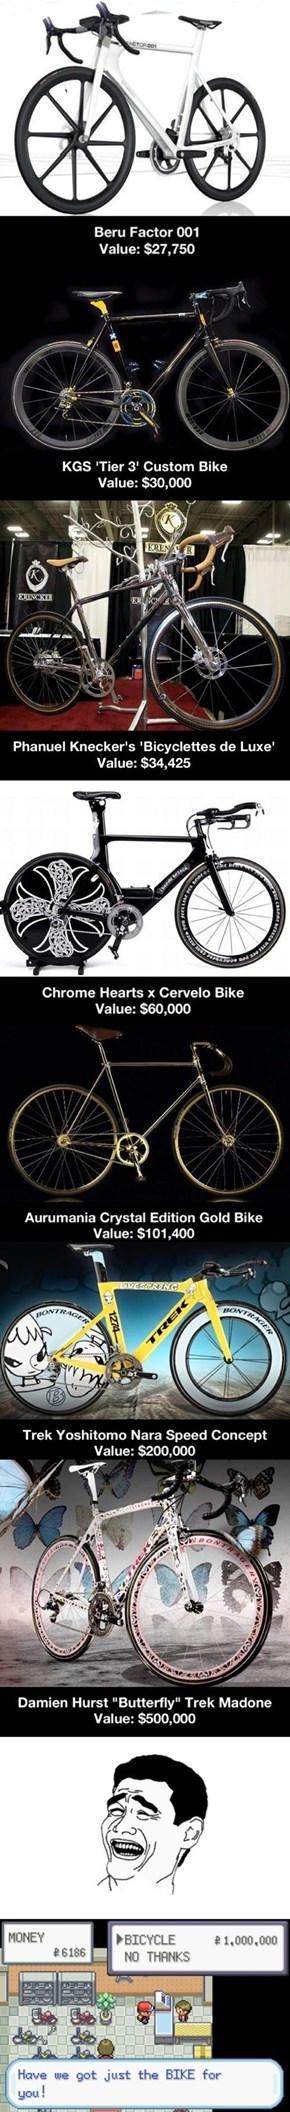 The World's Most Expensive Bikes